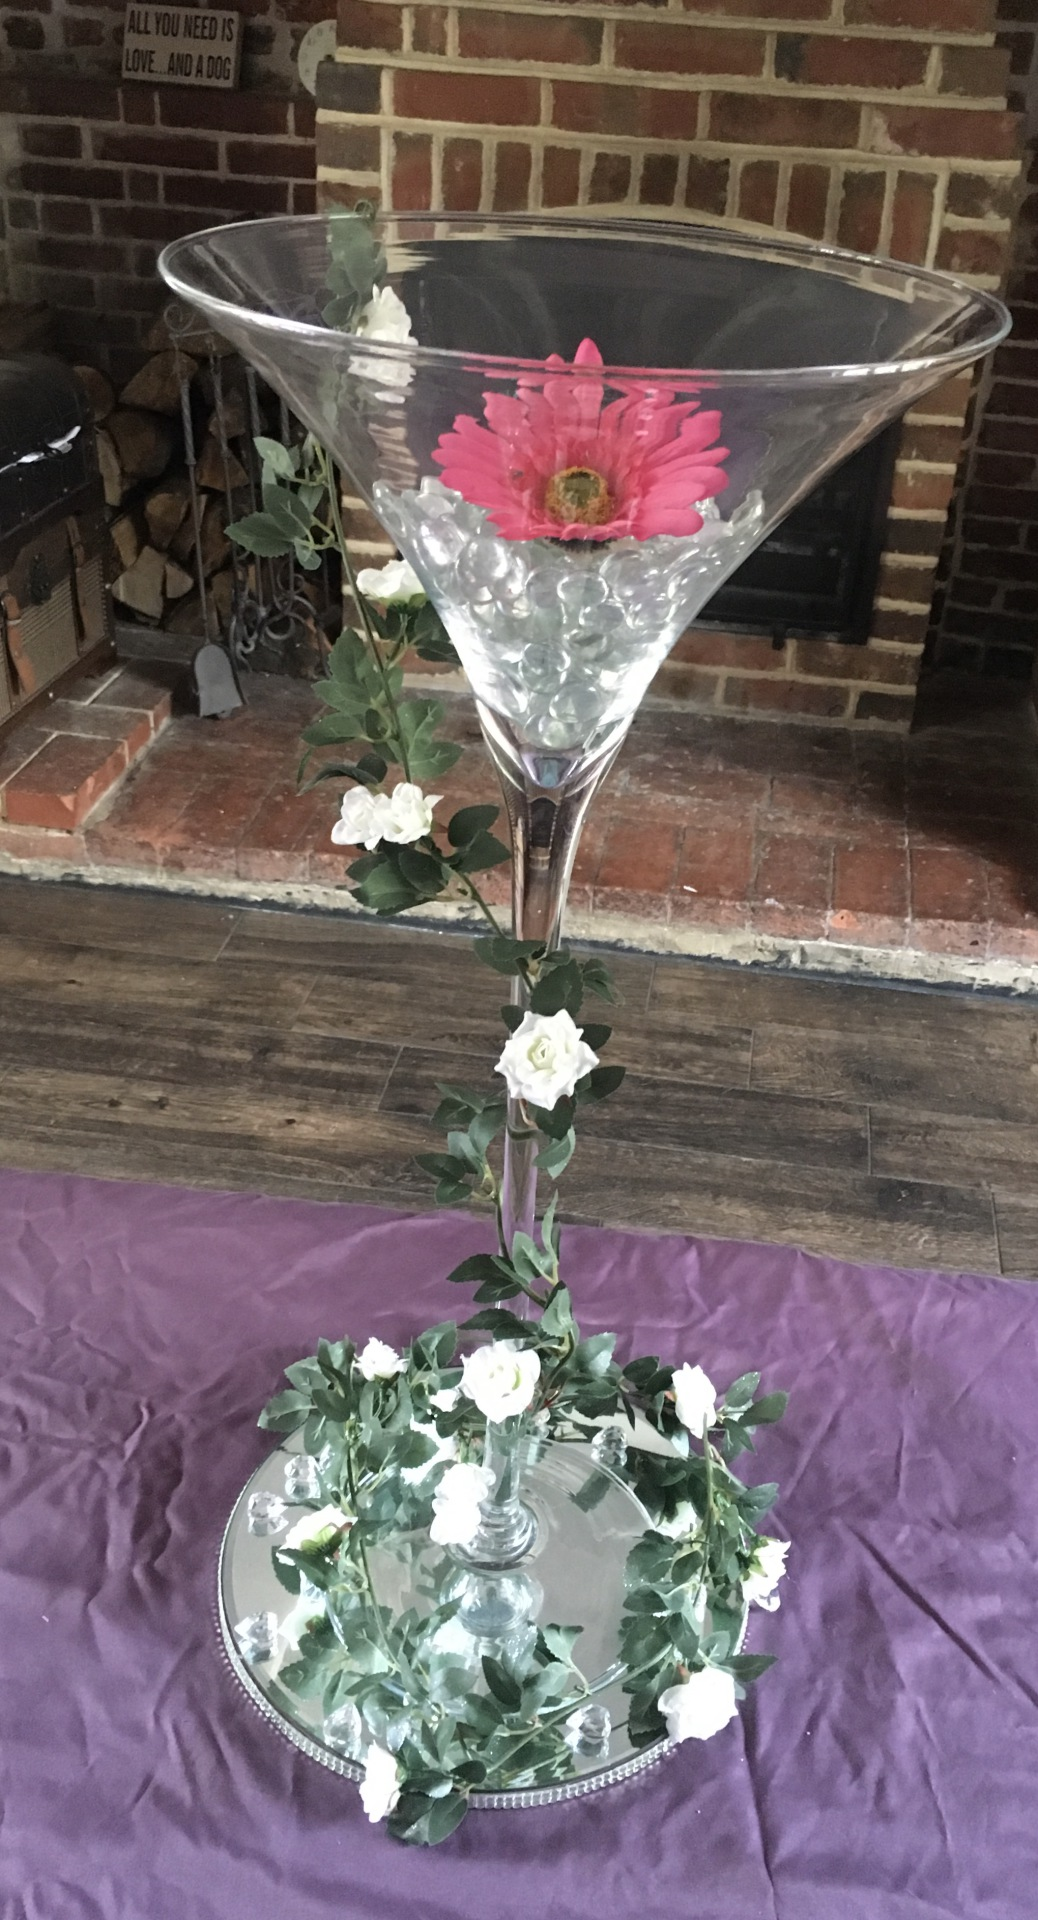 Oversized martini glasses supplied with mirrored plates, crystals & flower head